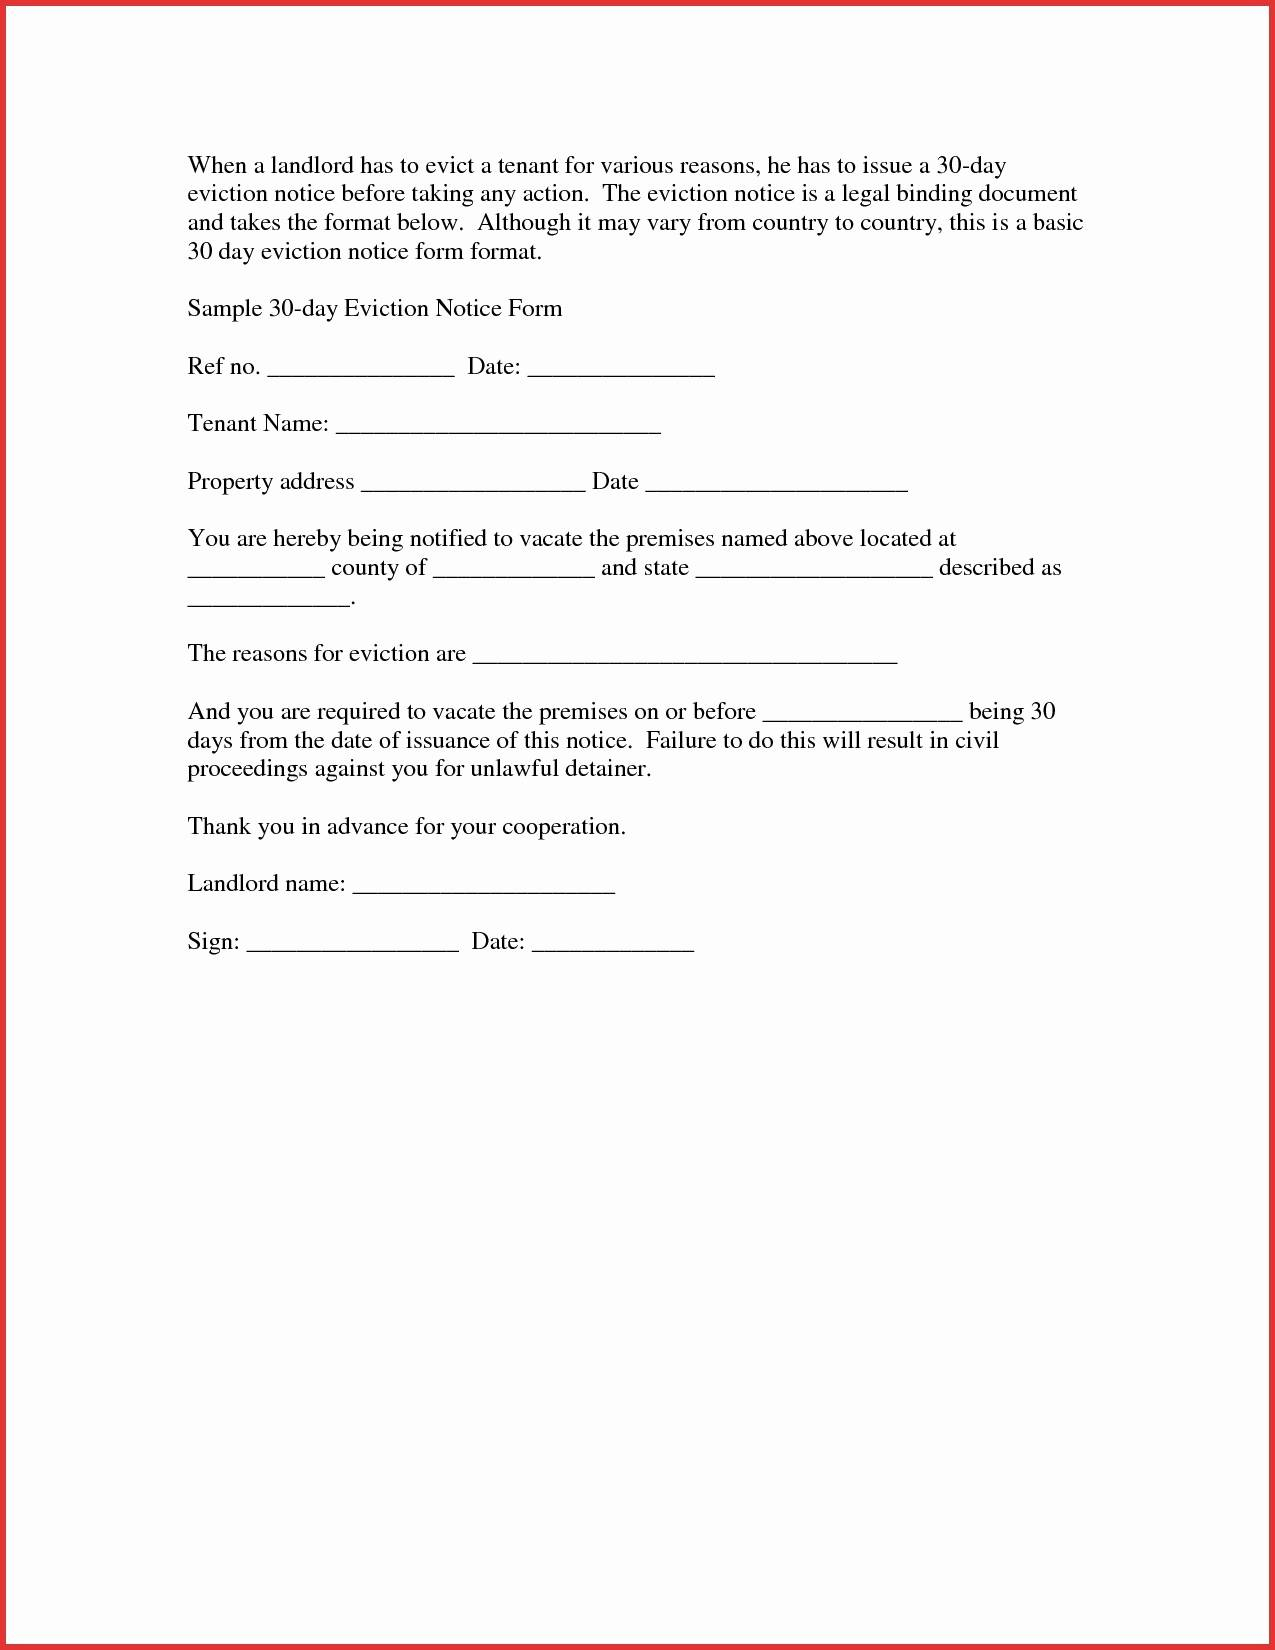 Tenant Eviction Letter Template - Tenant Eviction Letter Template Best Free Eviction Notice